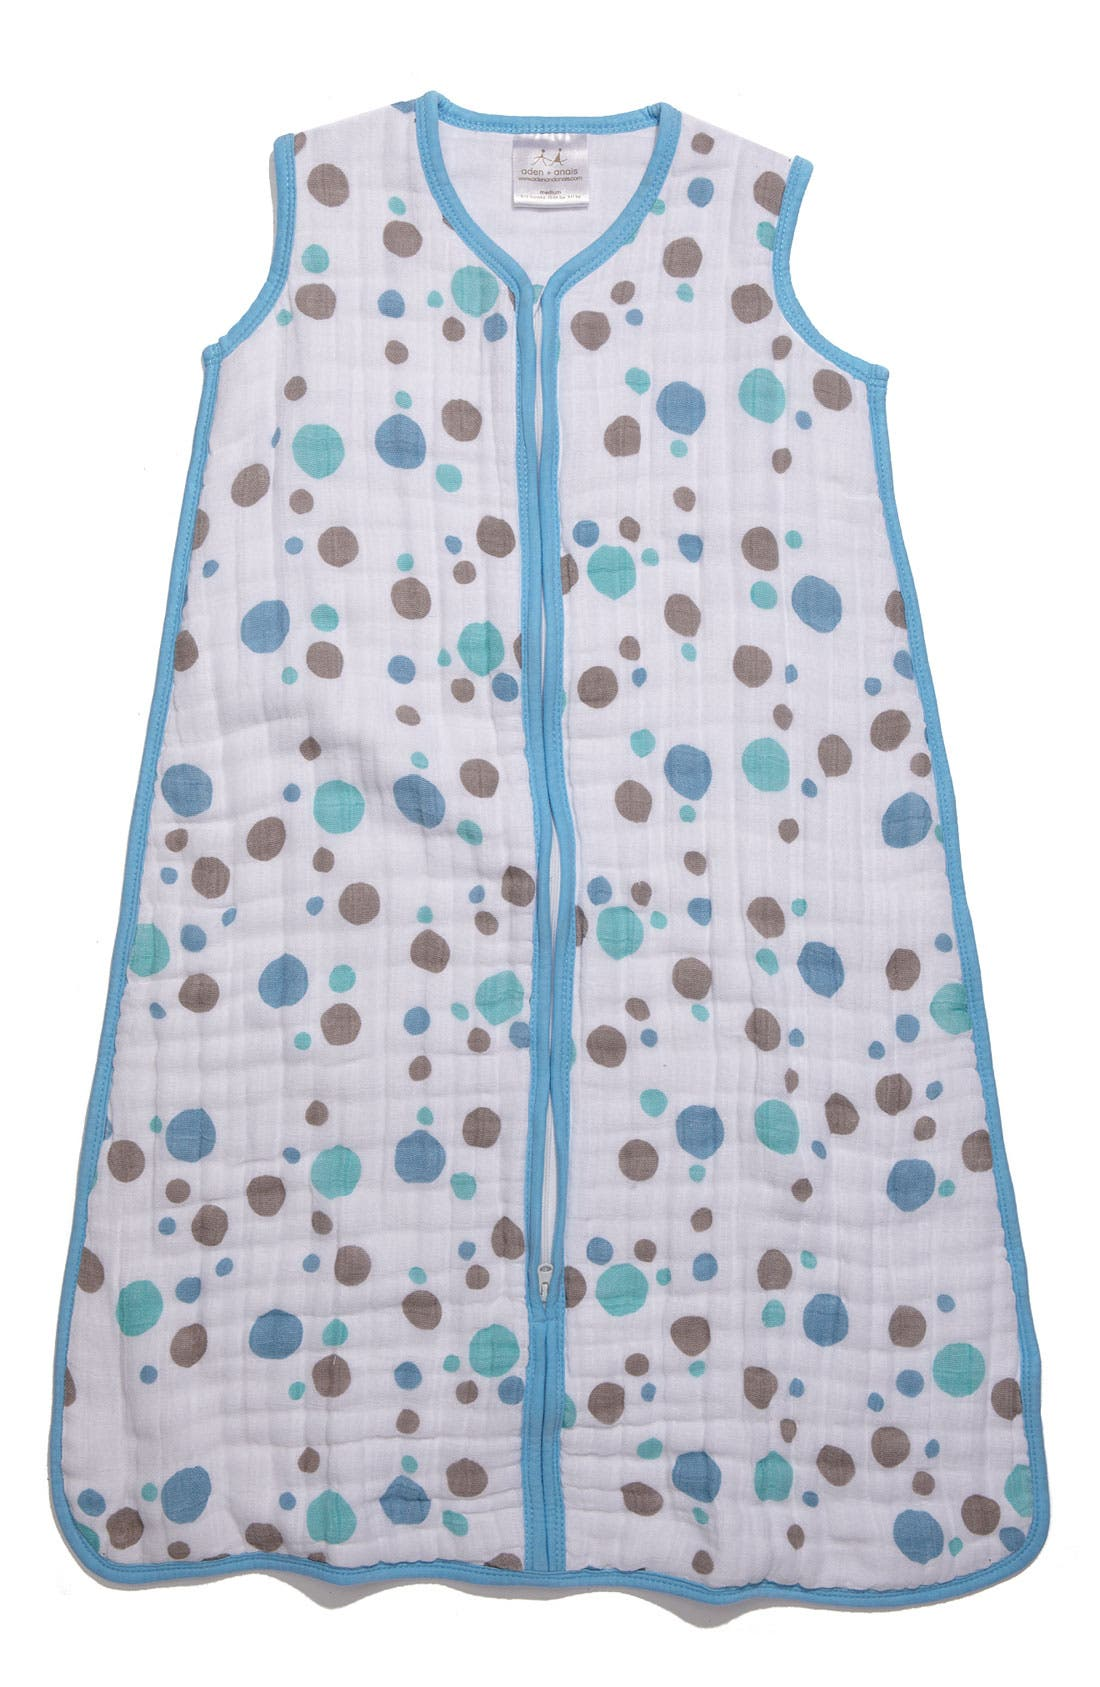 Alternate Image 1 Selected - aden + anais 'Cozy Sleeping Bag' Wearable Blanket (Baby)